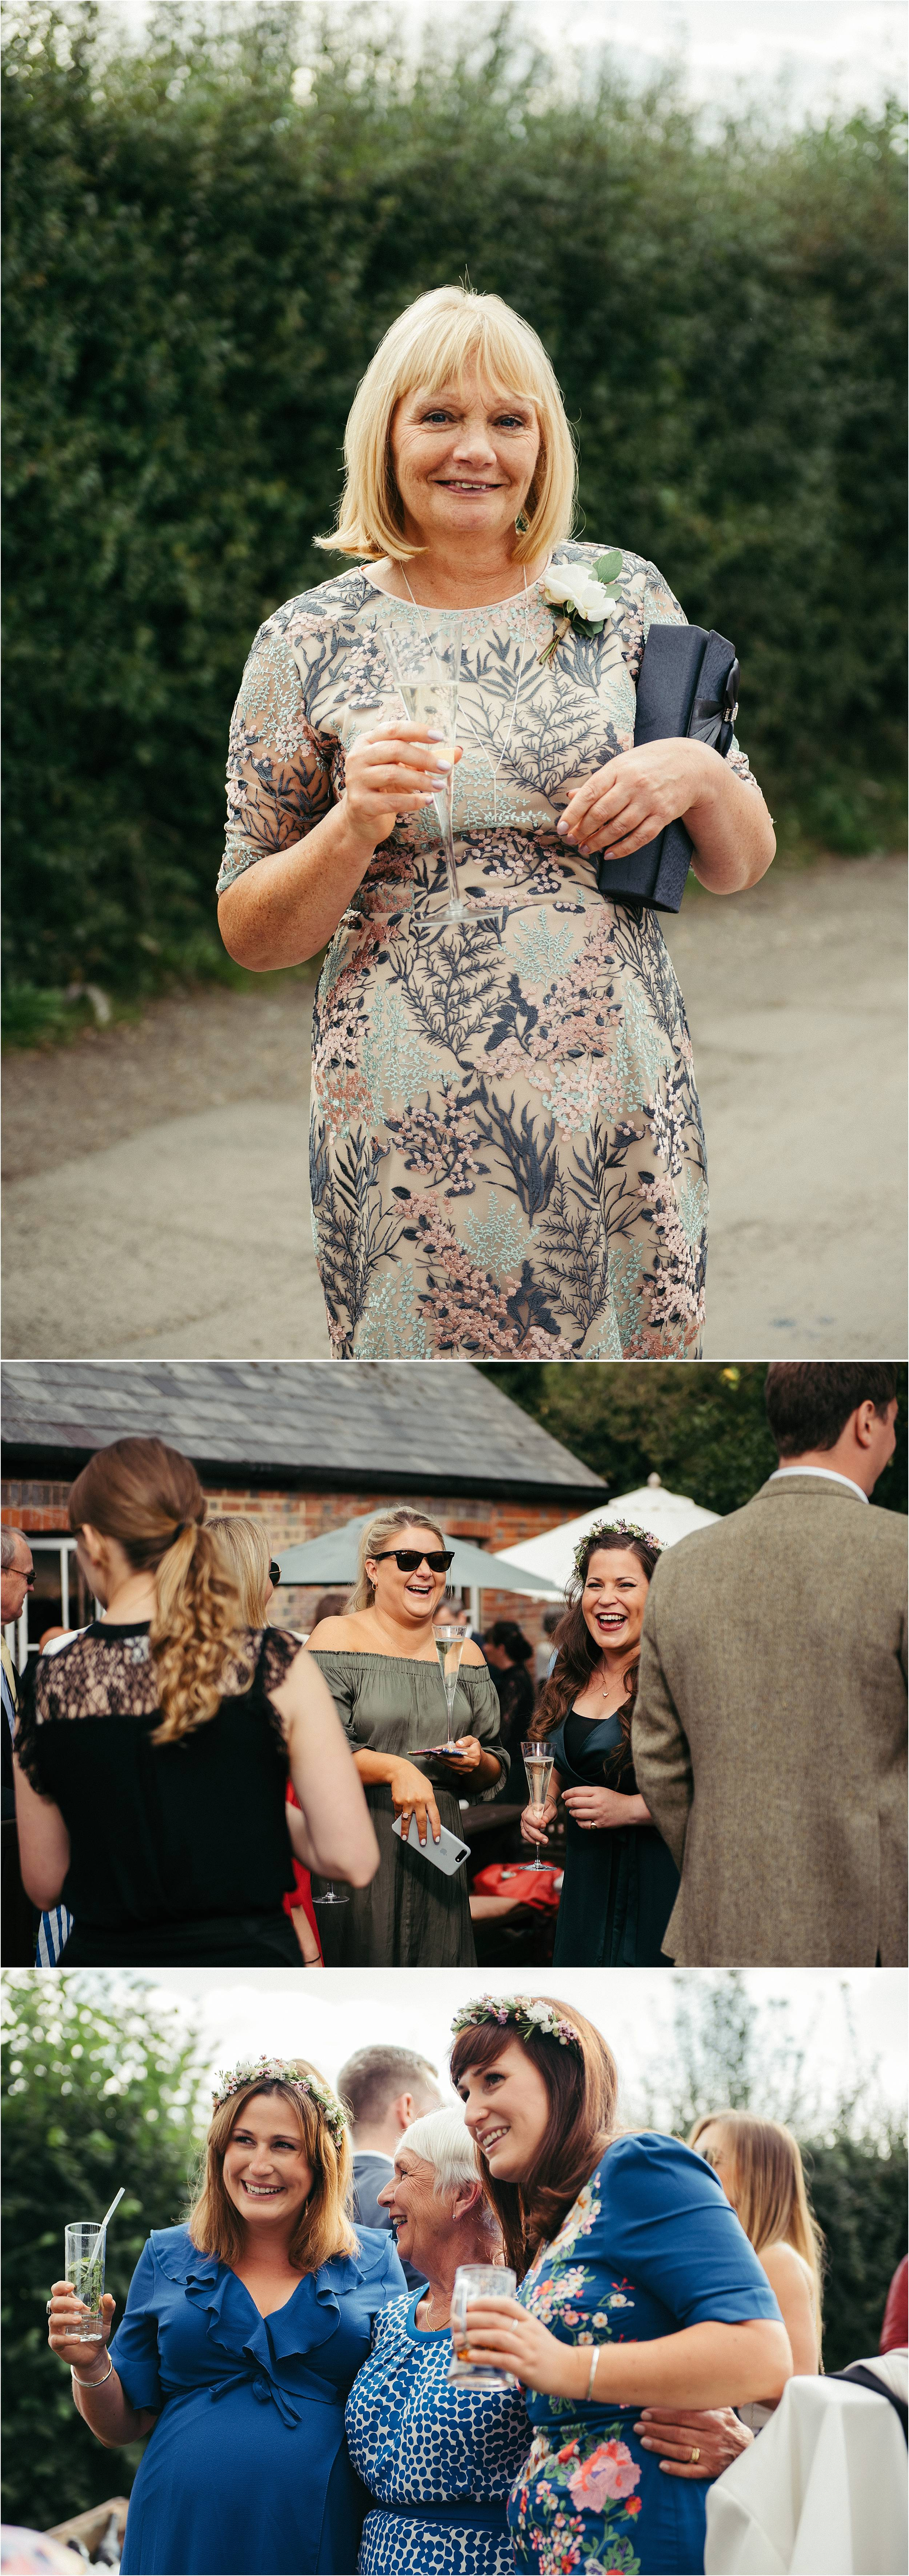 The Crooked Billet Pub Oxfordshire Wedding Photography_0065.jpg